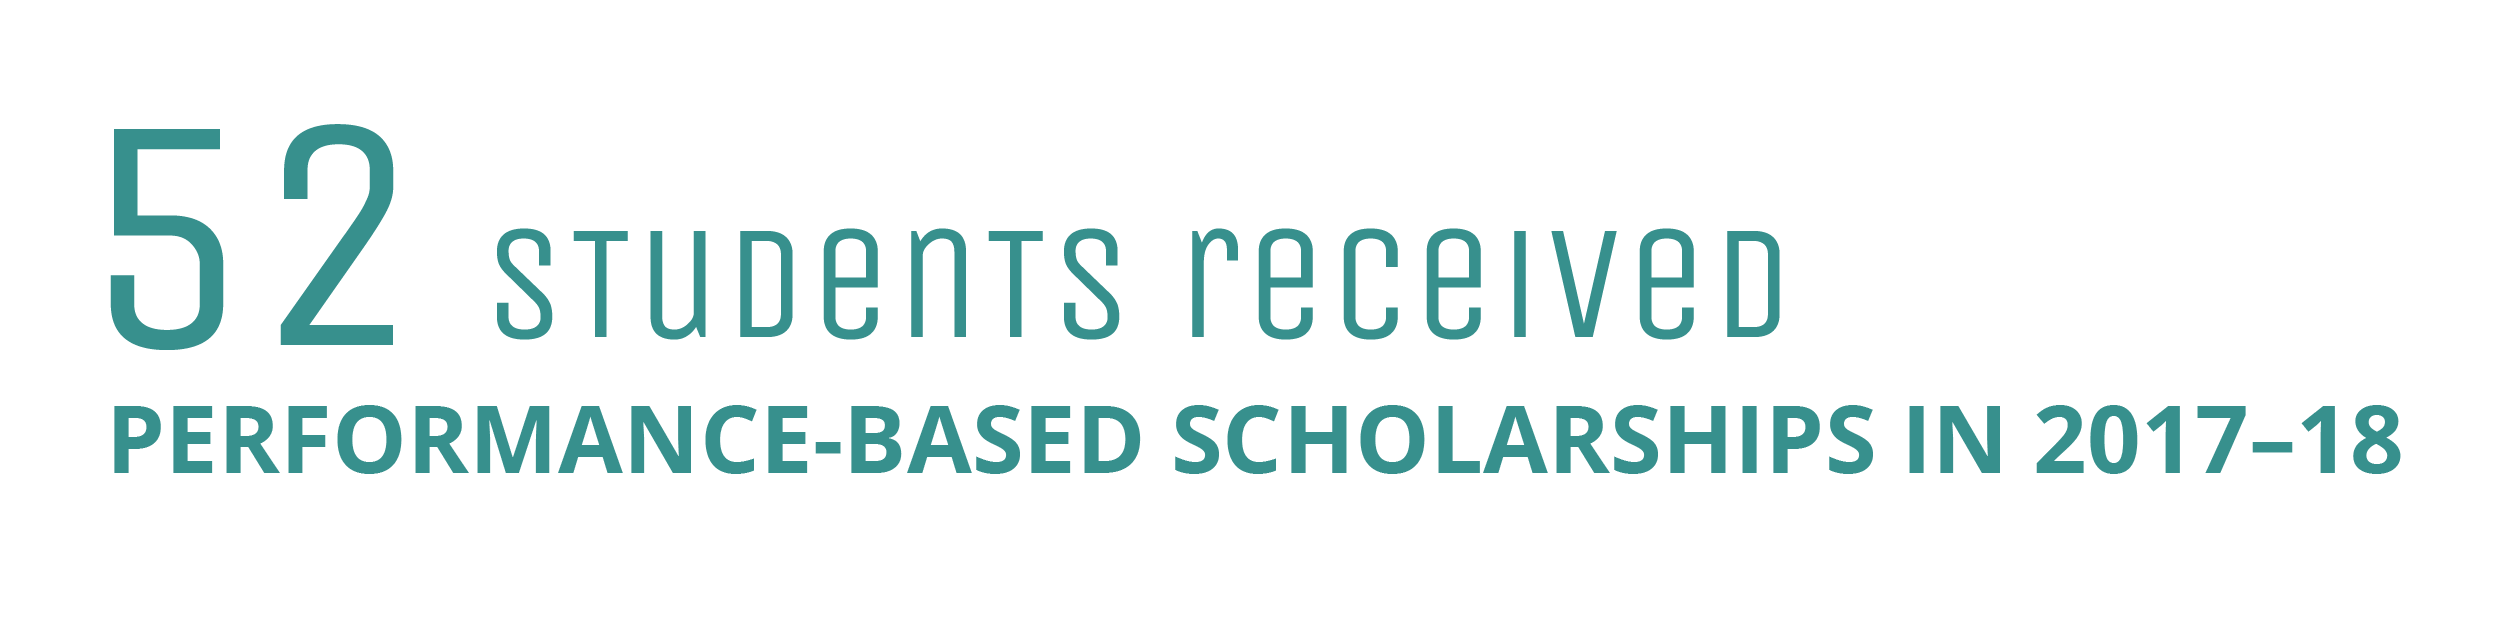 52 students received performance-based scholarships